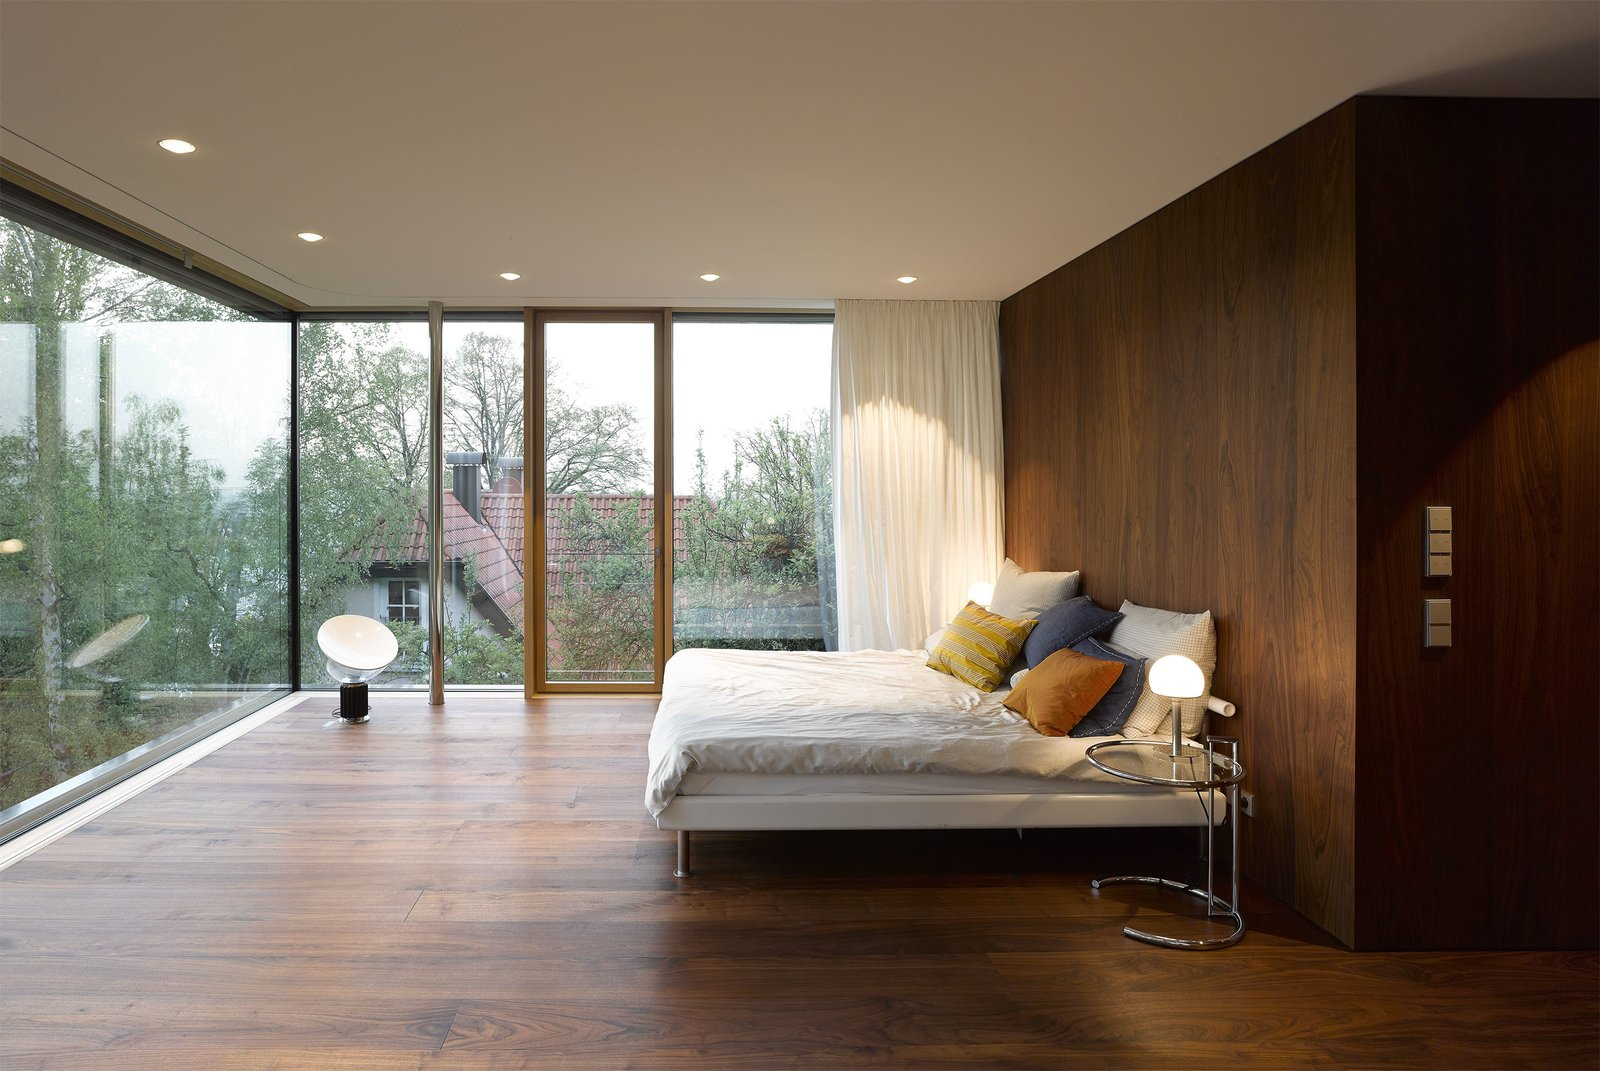 Bedroom, Night Stands, Table Lighting, Floor Lighting, Bed, Dark Hardwood Floor, Lamps, and Recessed Lighting Light streams into the bedroom through walls of floor-to-ceiling glass. The windows are triple-glazed, creating a tight, eco-friendly seal.  Best Photos from An Uninspired Home in Germany Gets a Bright, Eco-Friendly Update